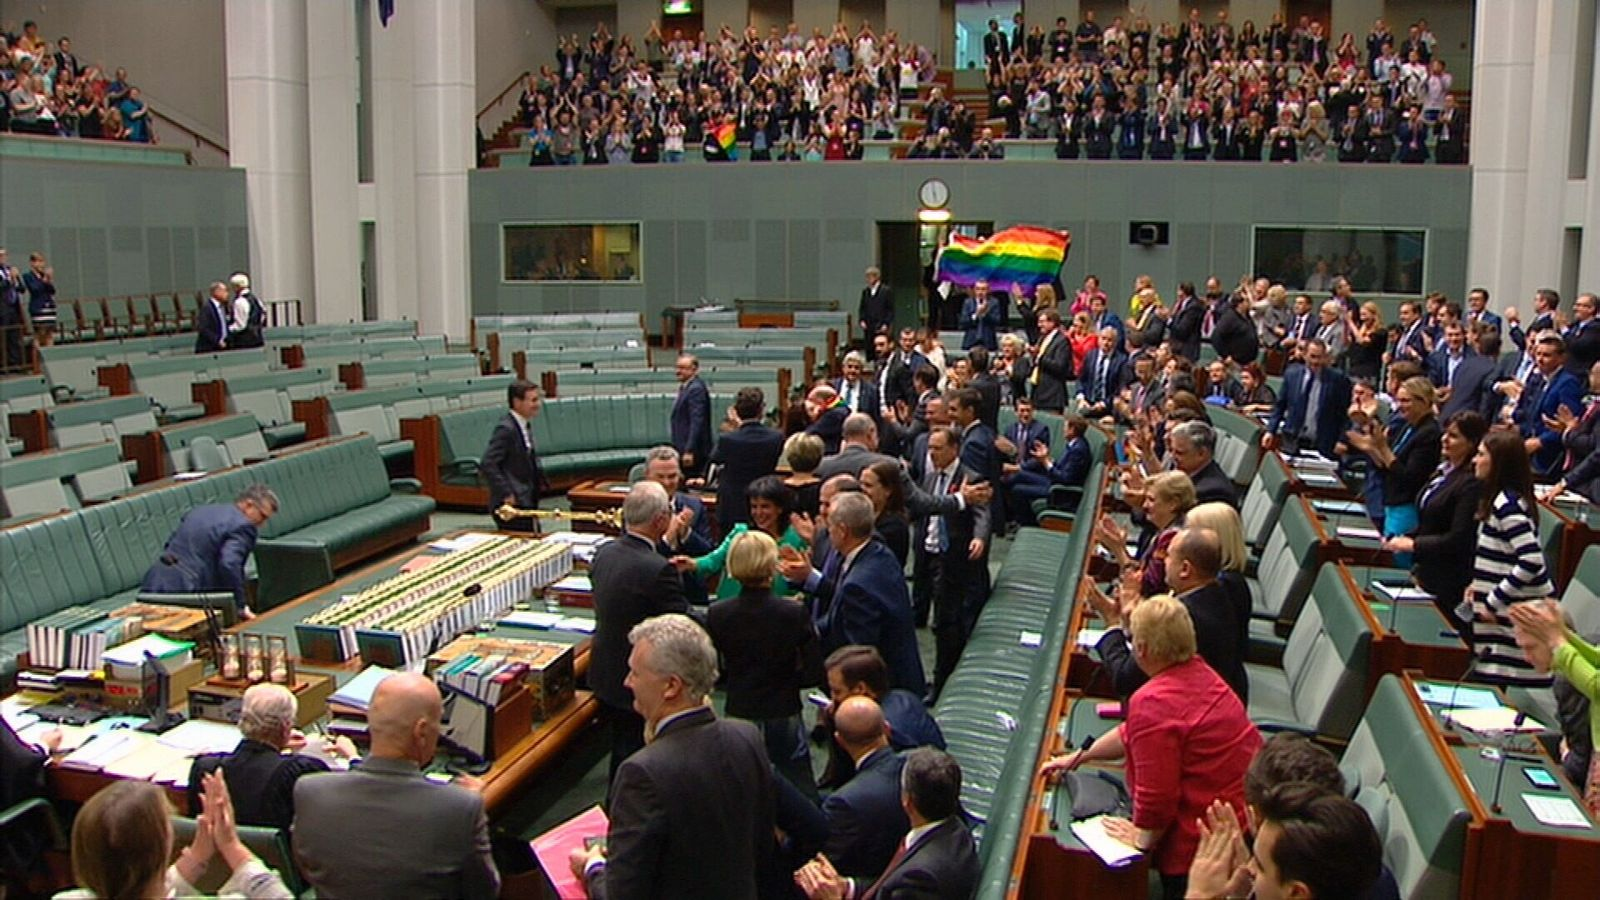 Parliament passed the law and the public gallery promptly broke into song. I presume it was YMCA. Credit: Getty